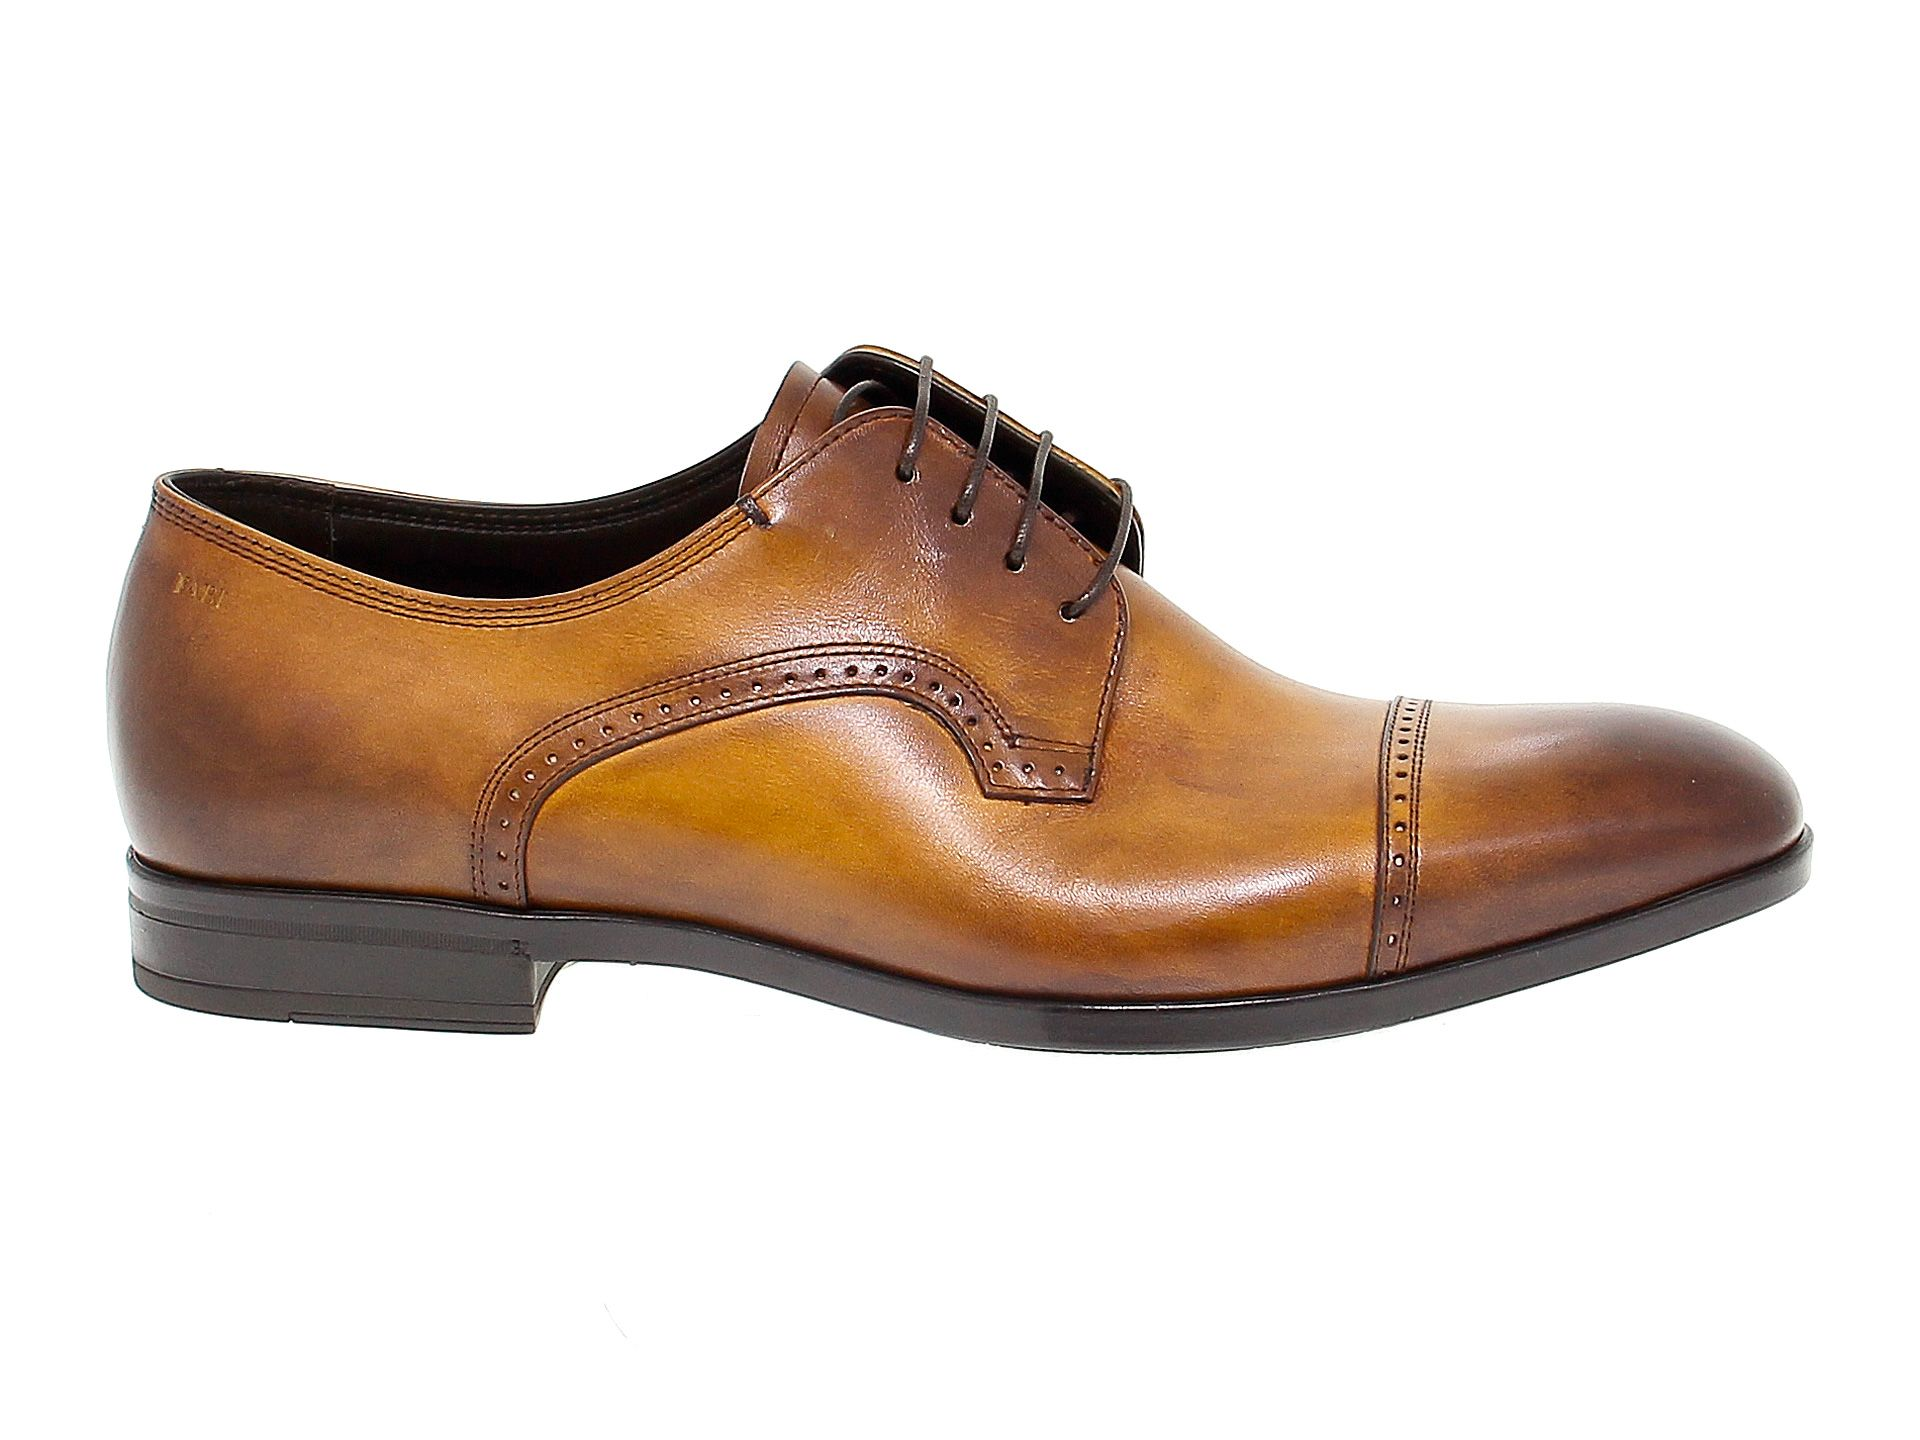 FABI MEN'S FABIFU8770C BROWN LEATHER LACE-UP SHOES